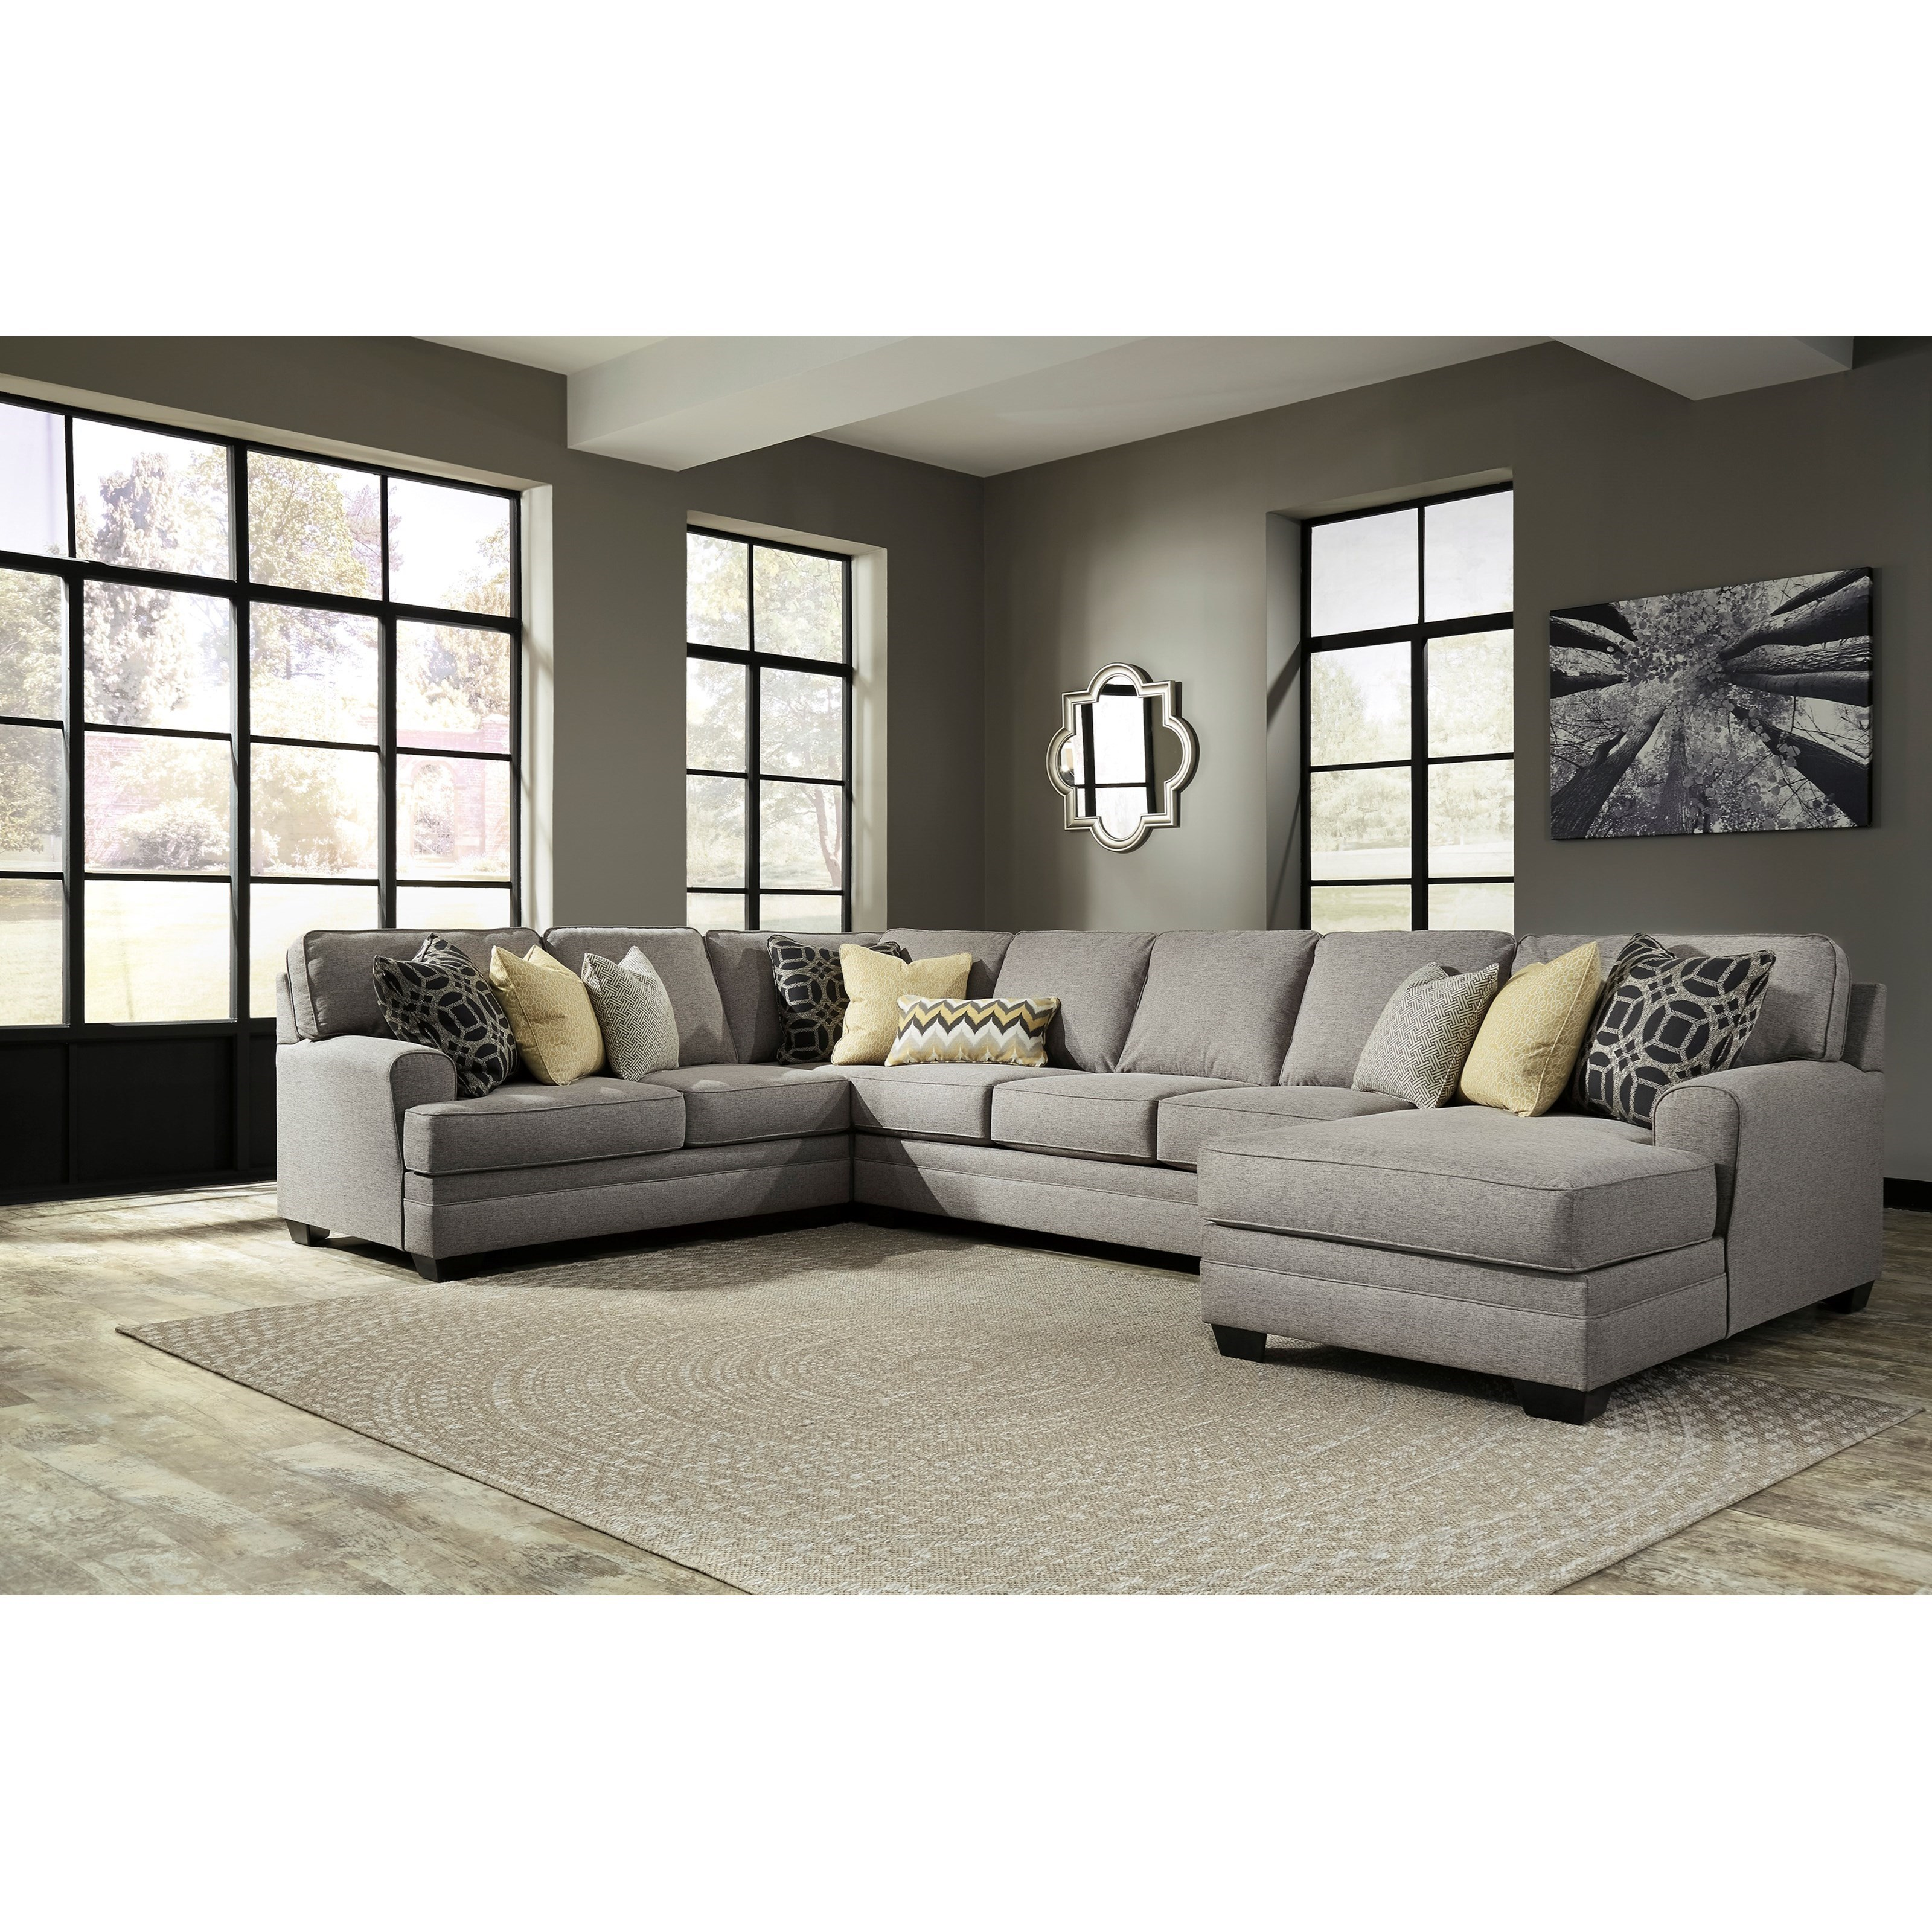 Benchcraft Cresson4-Piece Sectional with Chaise & Armless Sofa